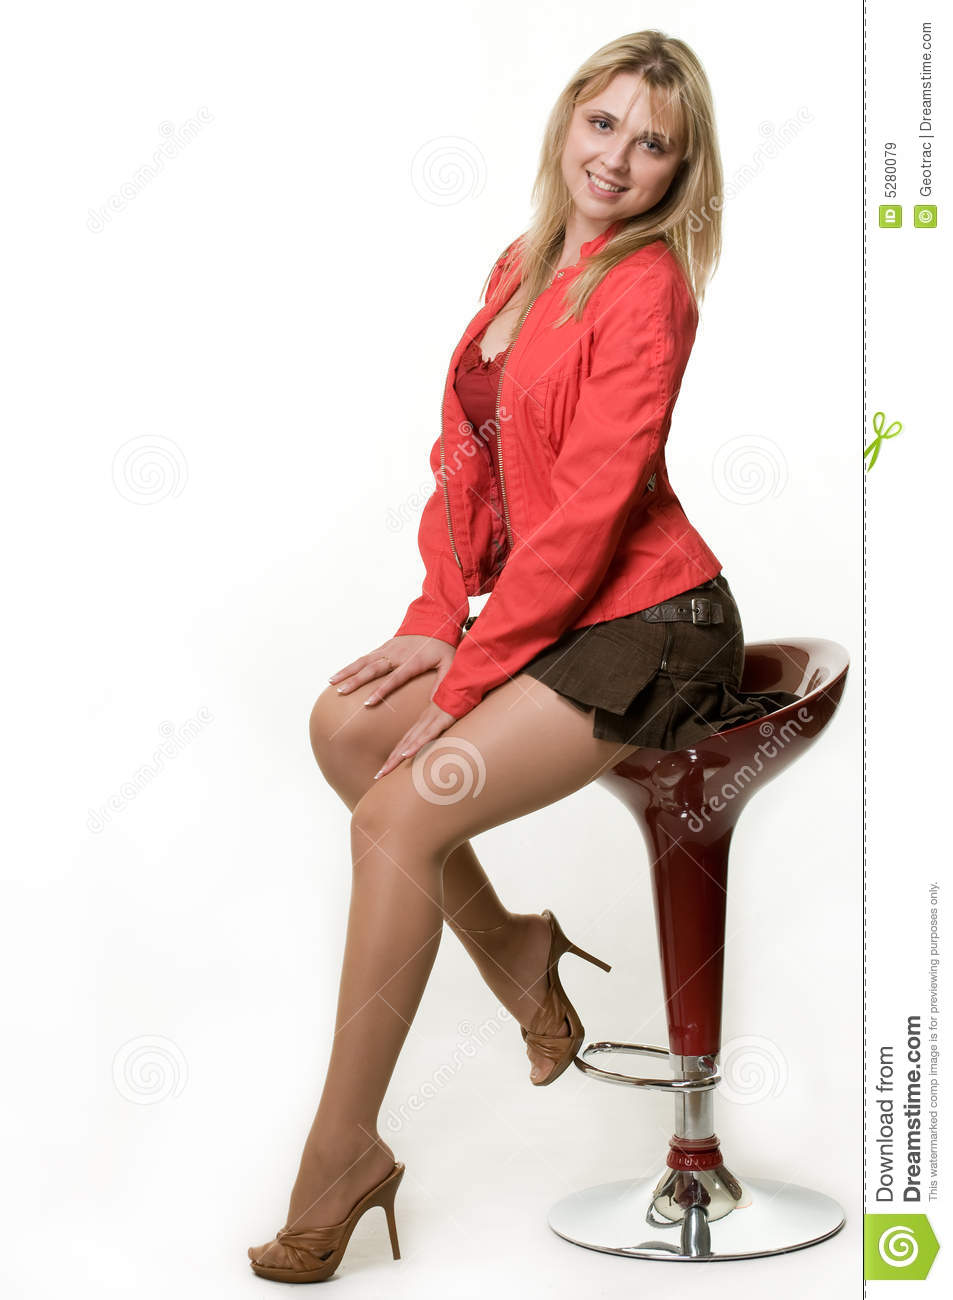 Woman On Stool Royalty Free Stock Images  Image 5280079